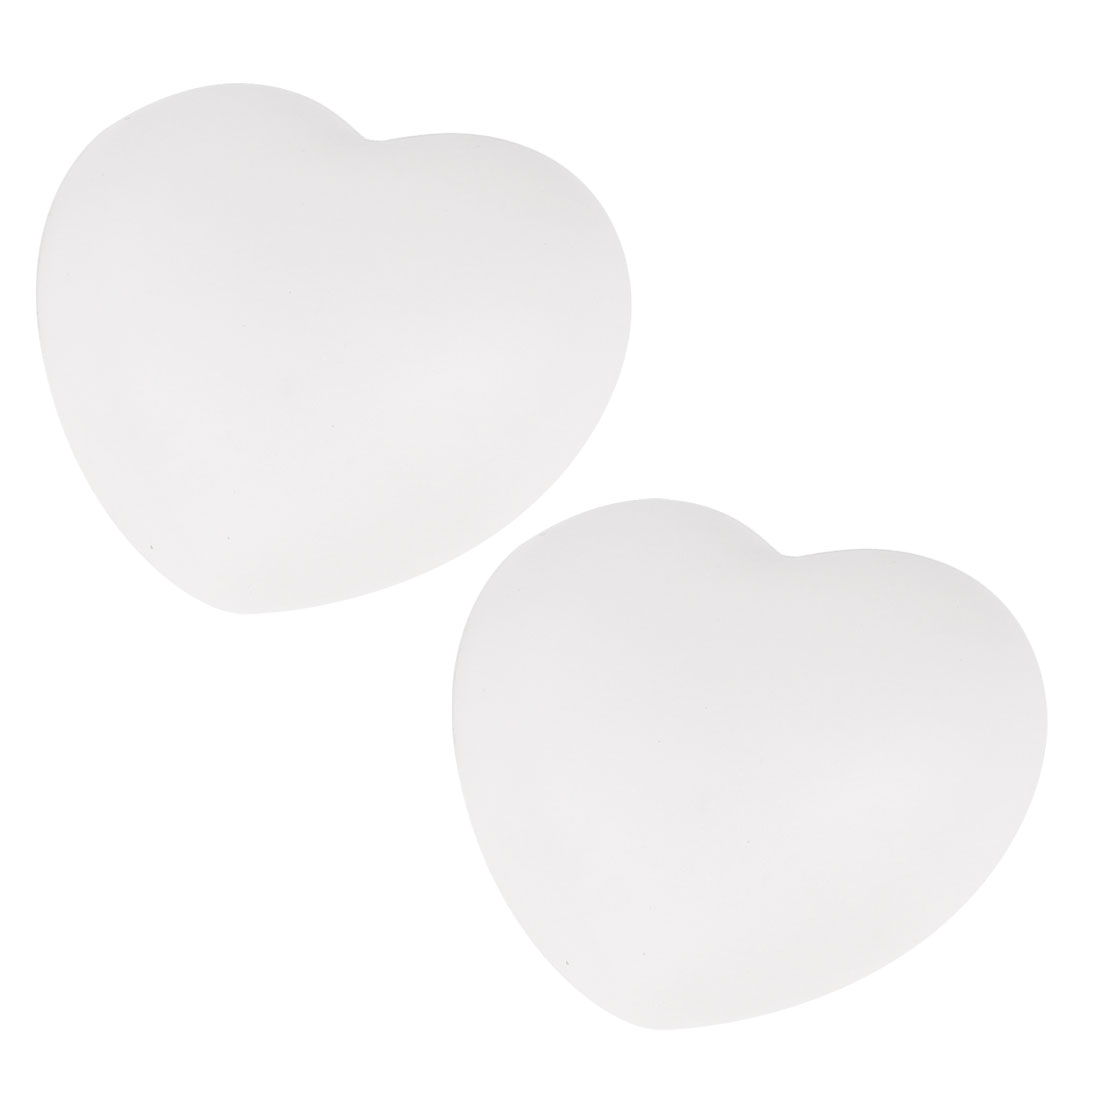 2 Pcs Peach Heart Shaped Colorful LED Night Light Lamp White